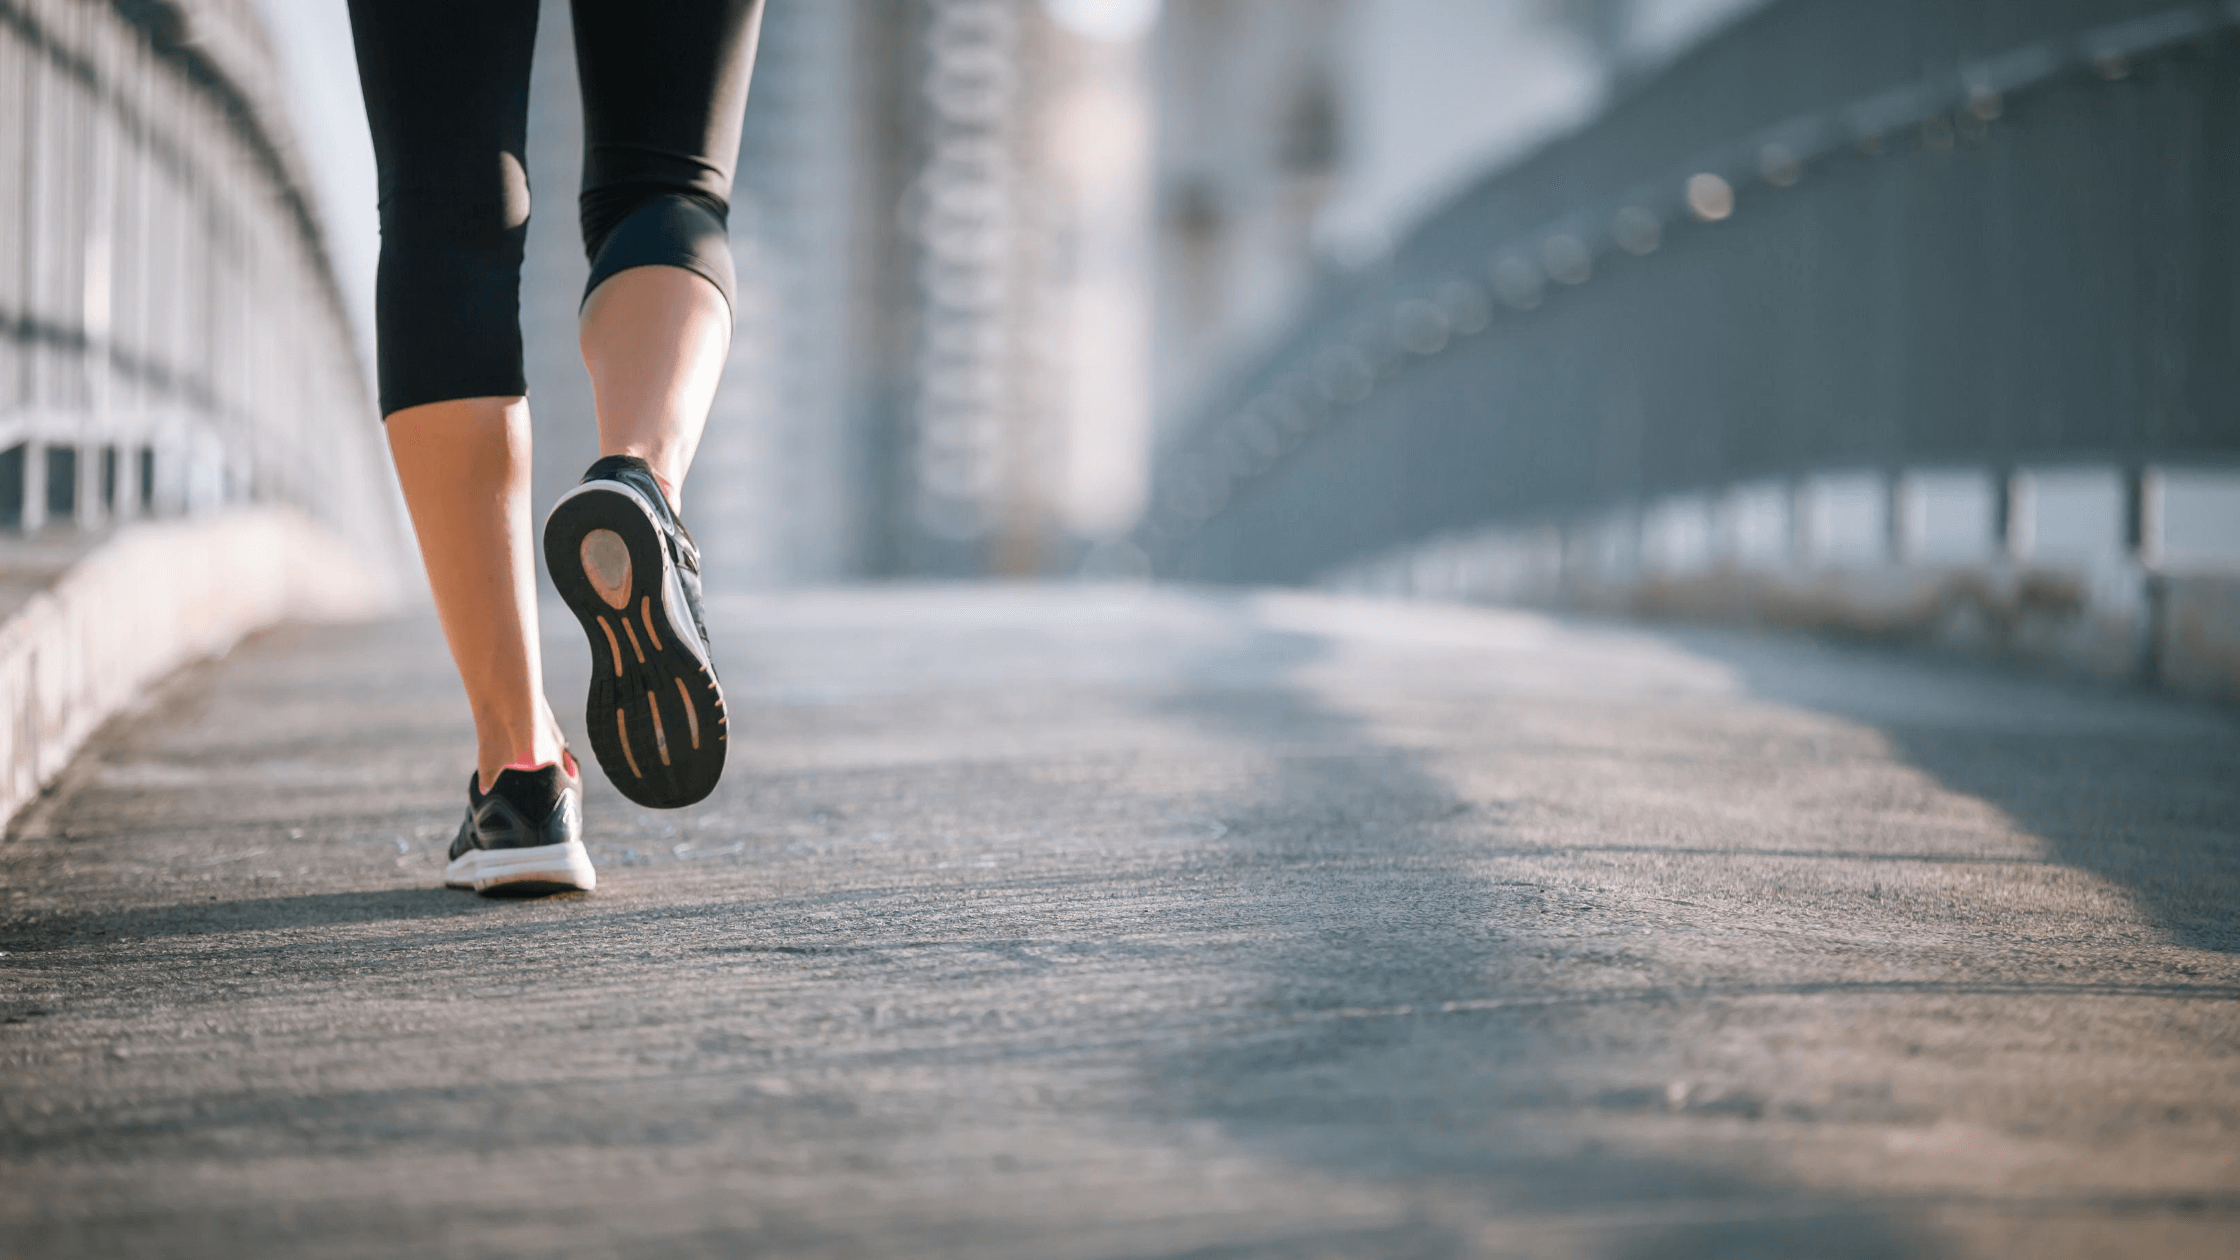 Feet walking-how to persevere